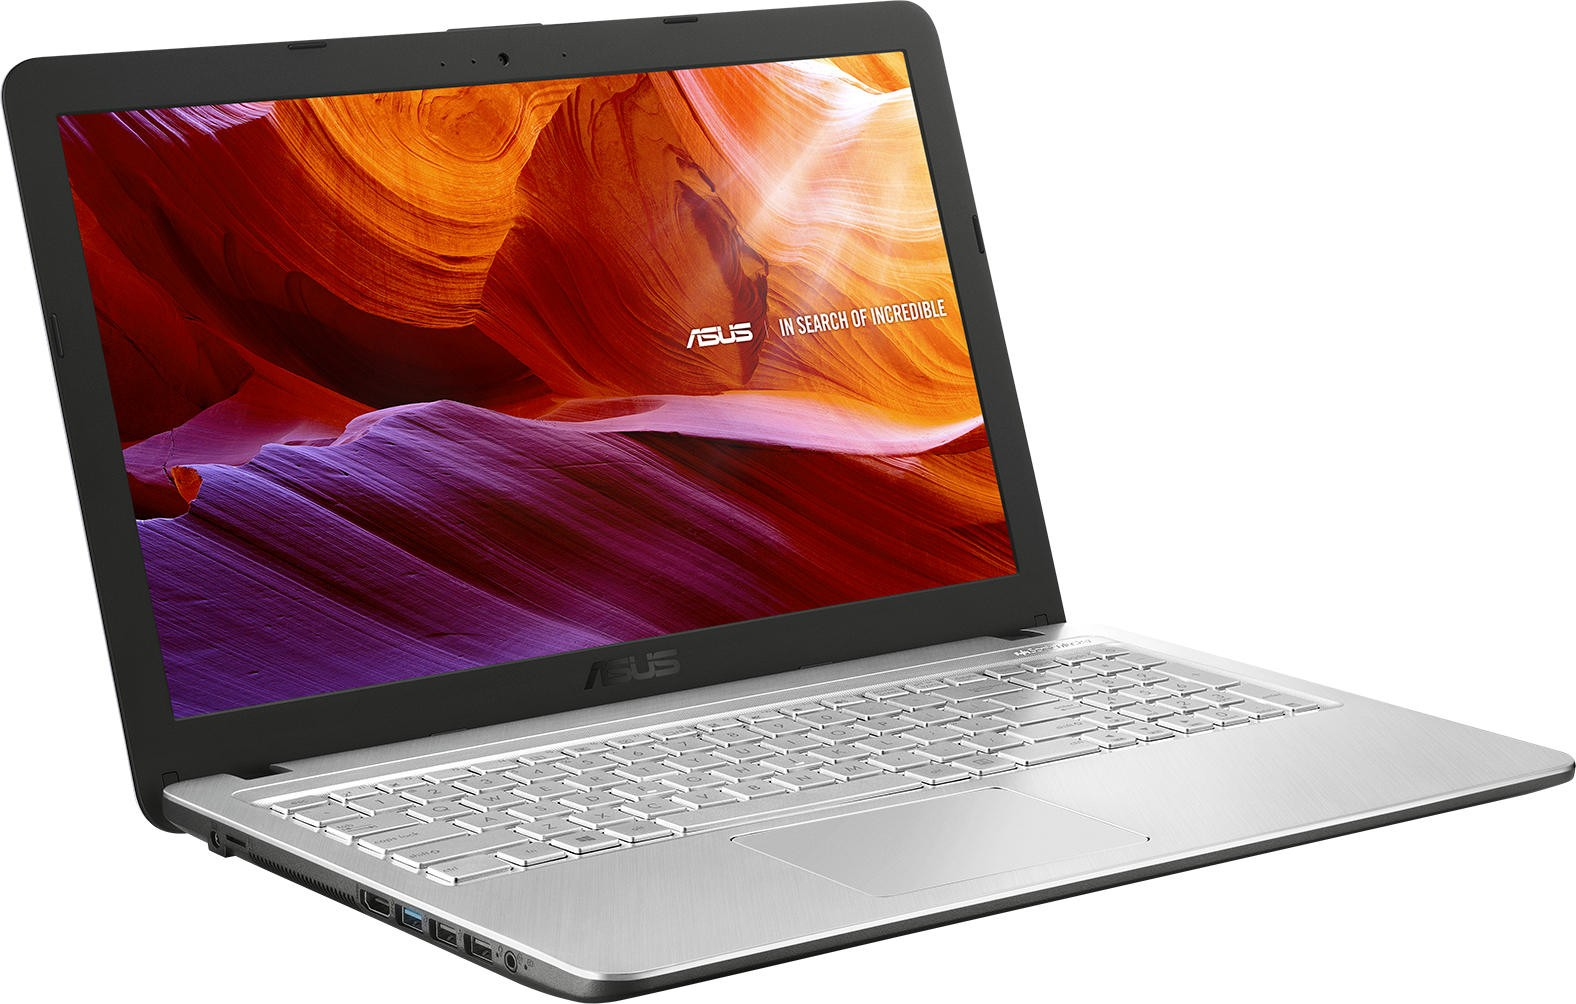 Ordinateur portable Asus X543UA-GQ1685T Intel Pentium, SSD 256 Go, 4Go, 15.6 pouces LED, W10 64bits, informatique Reunion 974, Futur Réunion informatique